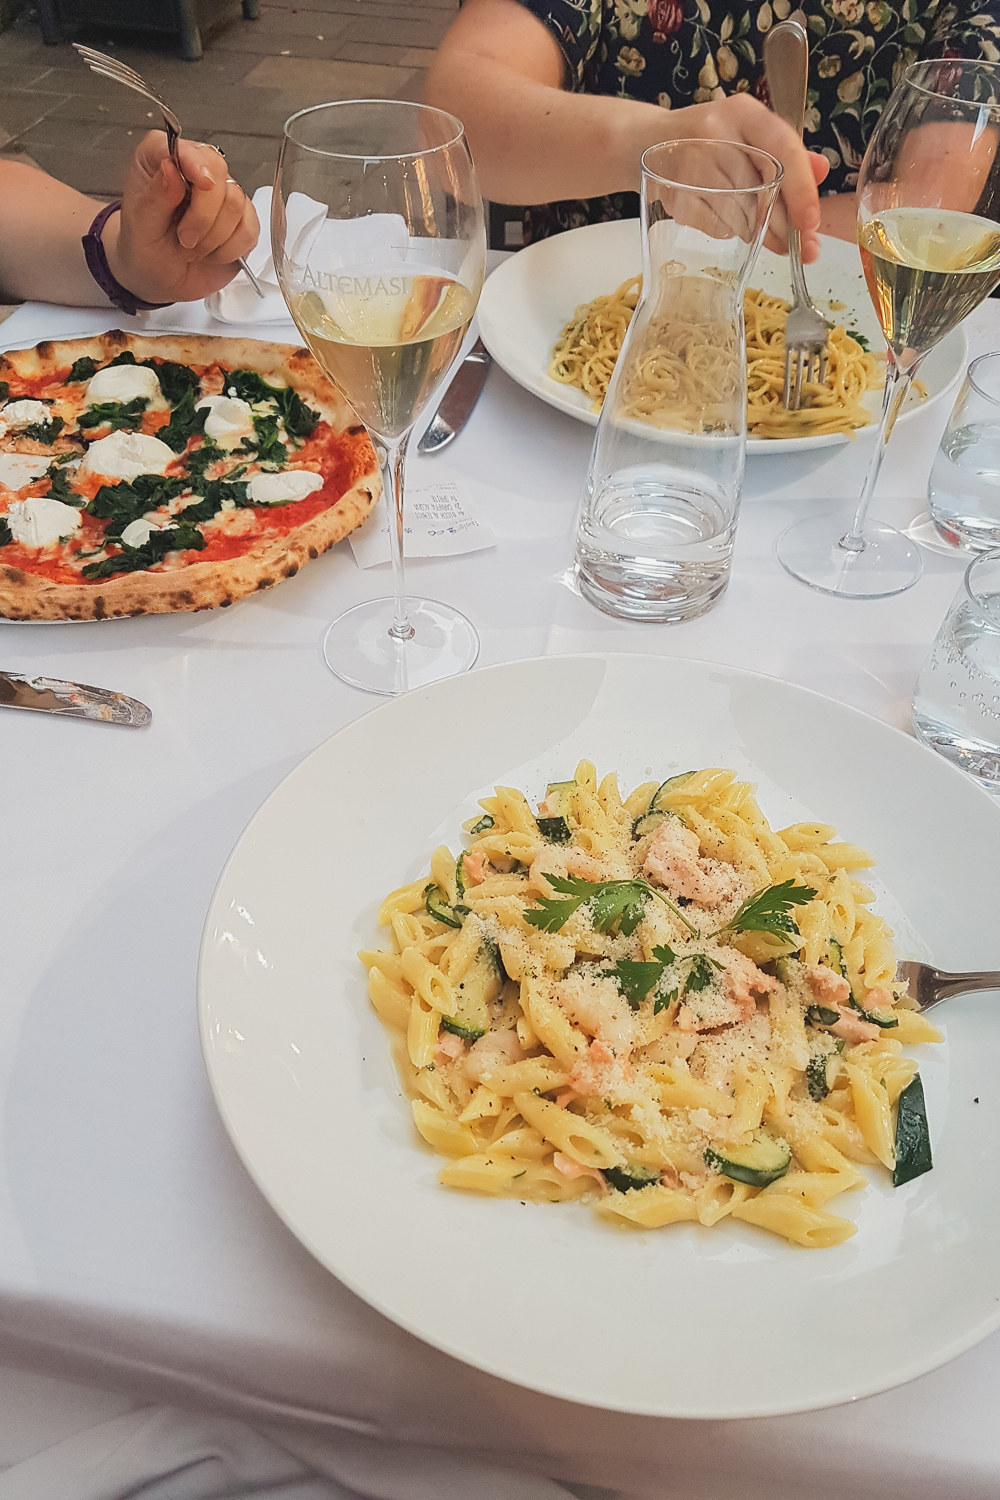 Pizza and Pasta in Trento Italy